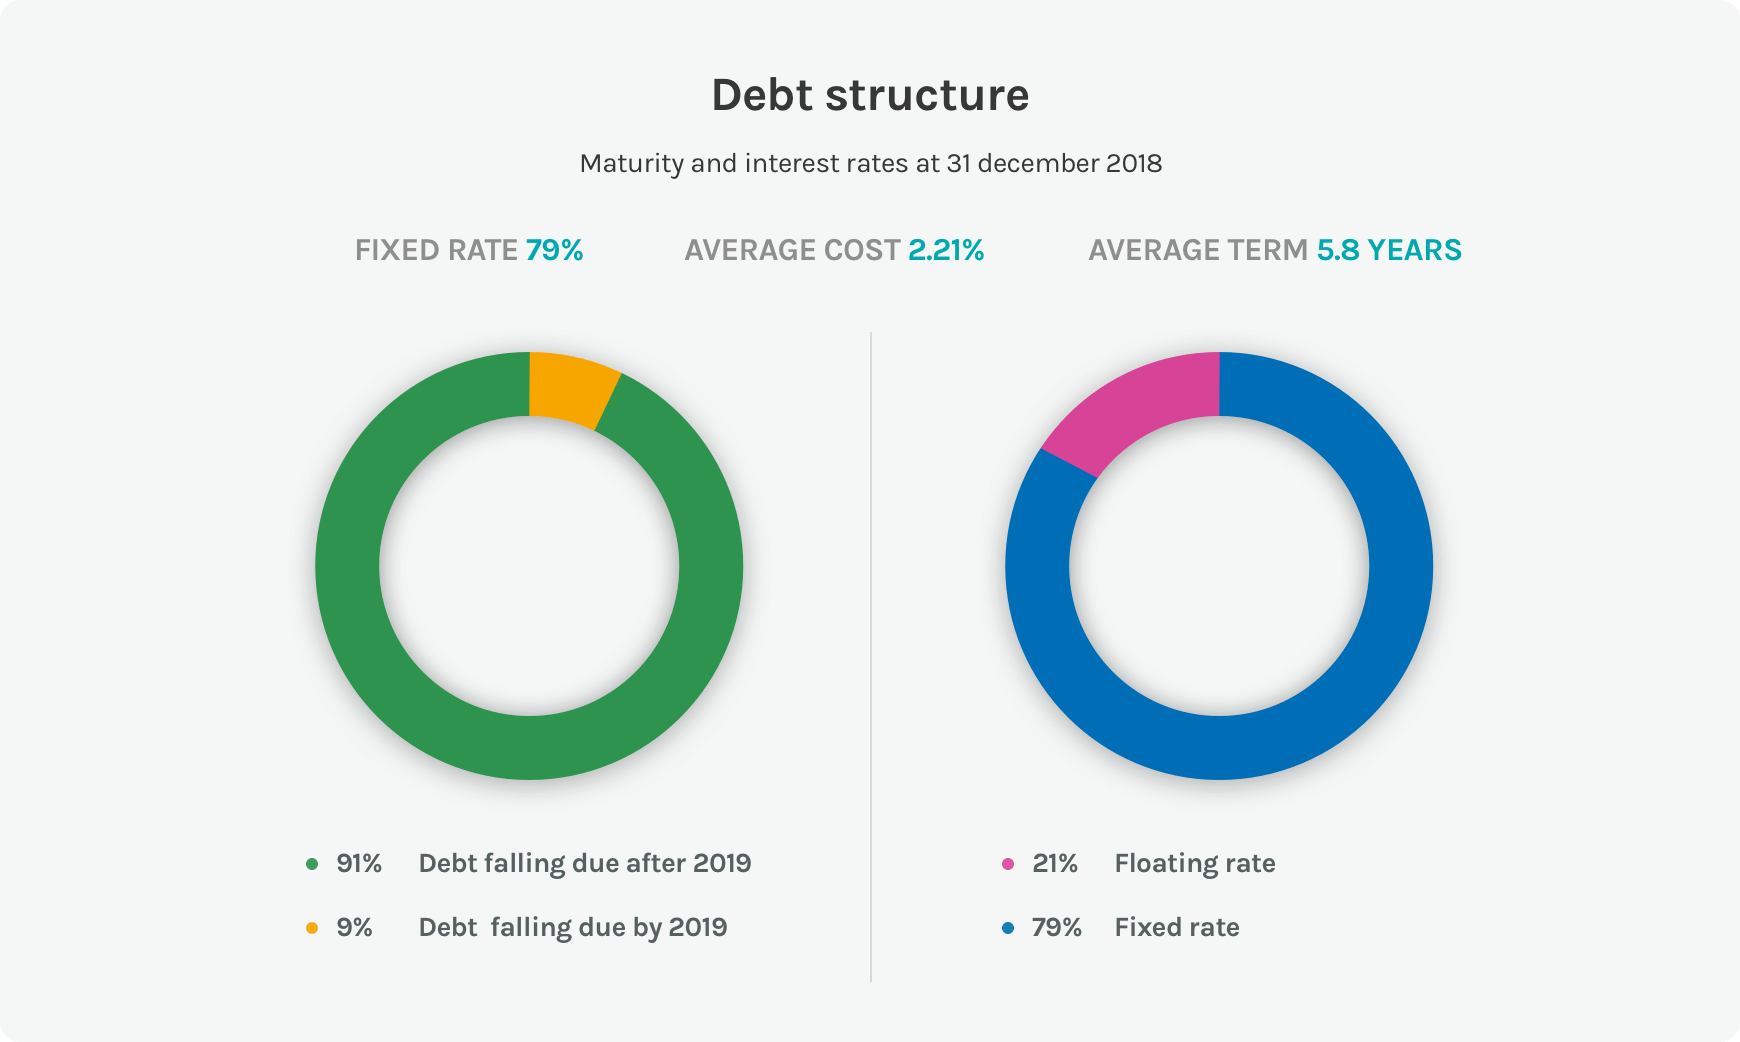 Diagrams on the debt structure of the Acea Group